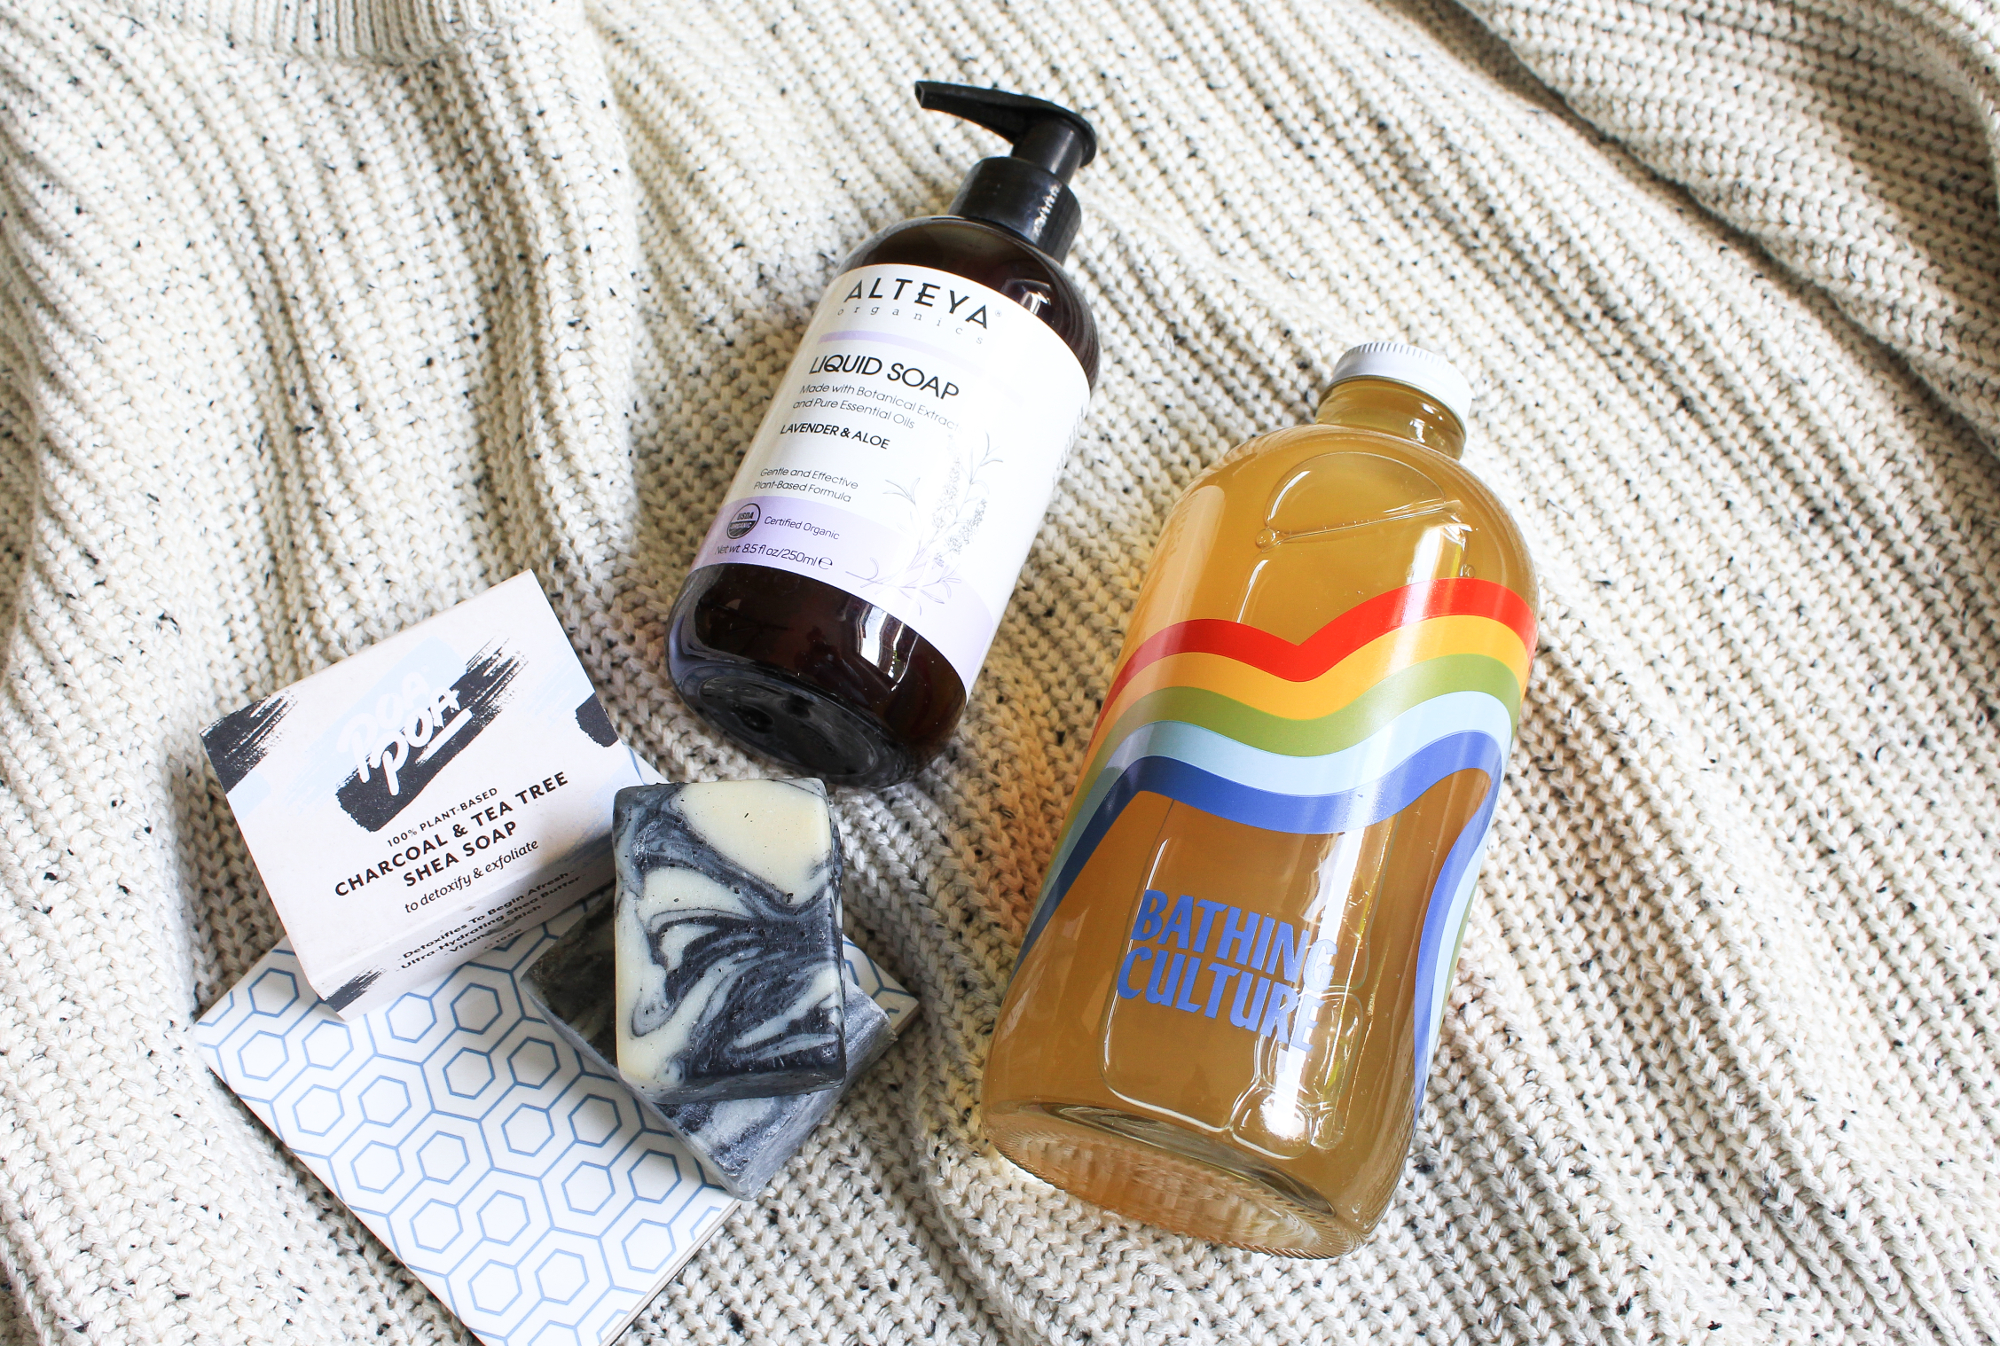 Alteya Organics Liquid Soap Lavender Aloe, Poapoa Charcoal Tea Tree Shea Soap, Bathing Culture Refillable Mind Body Wash. Lovelula, Beauty Heroes.